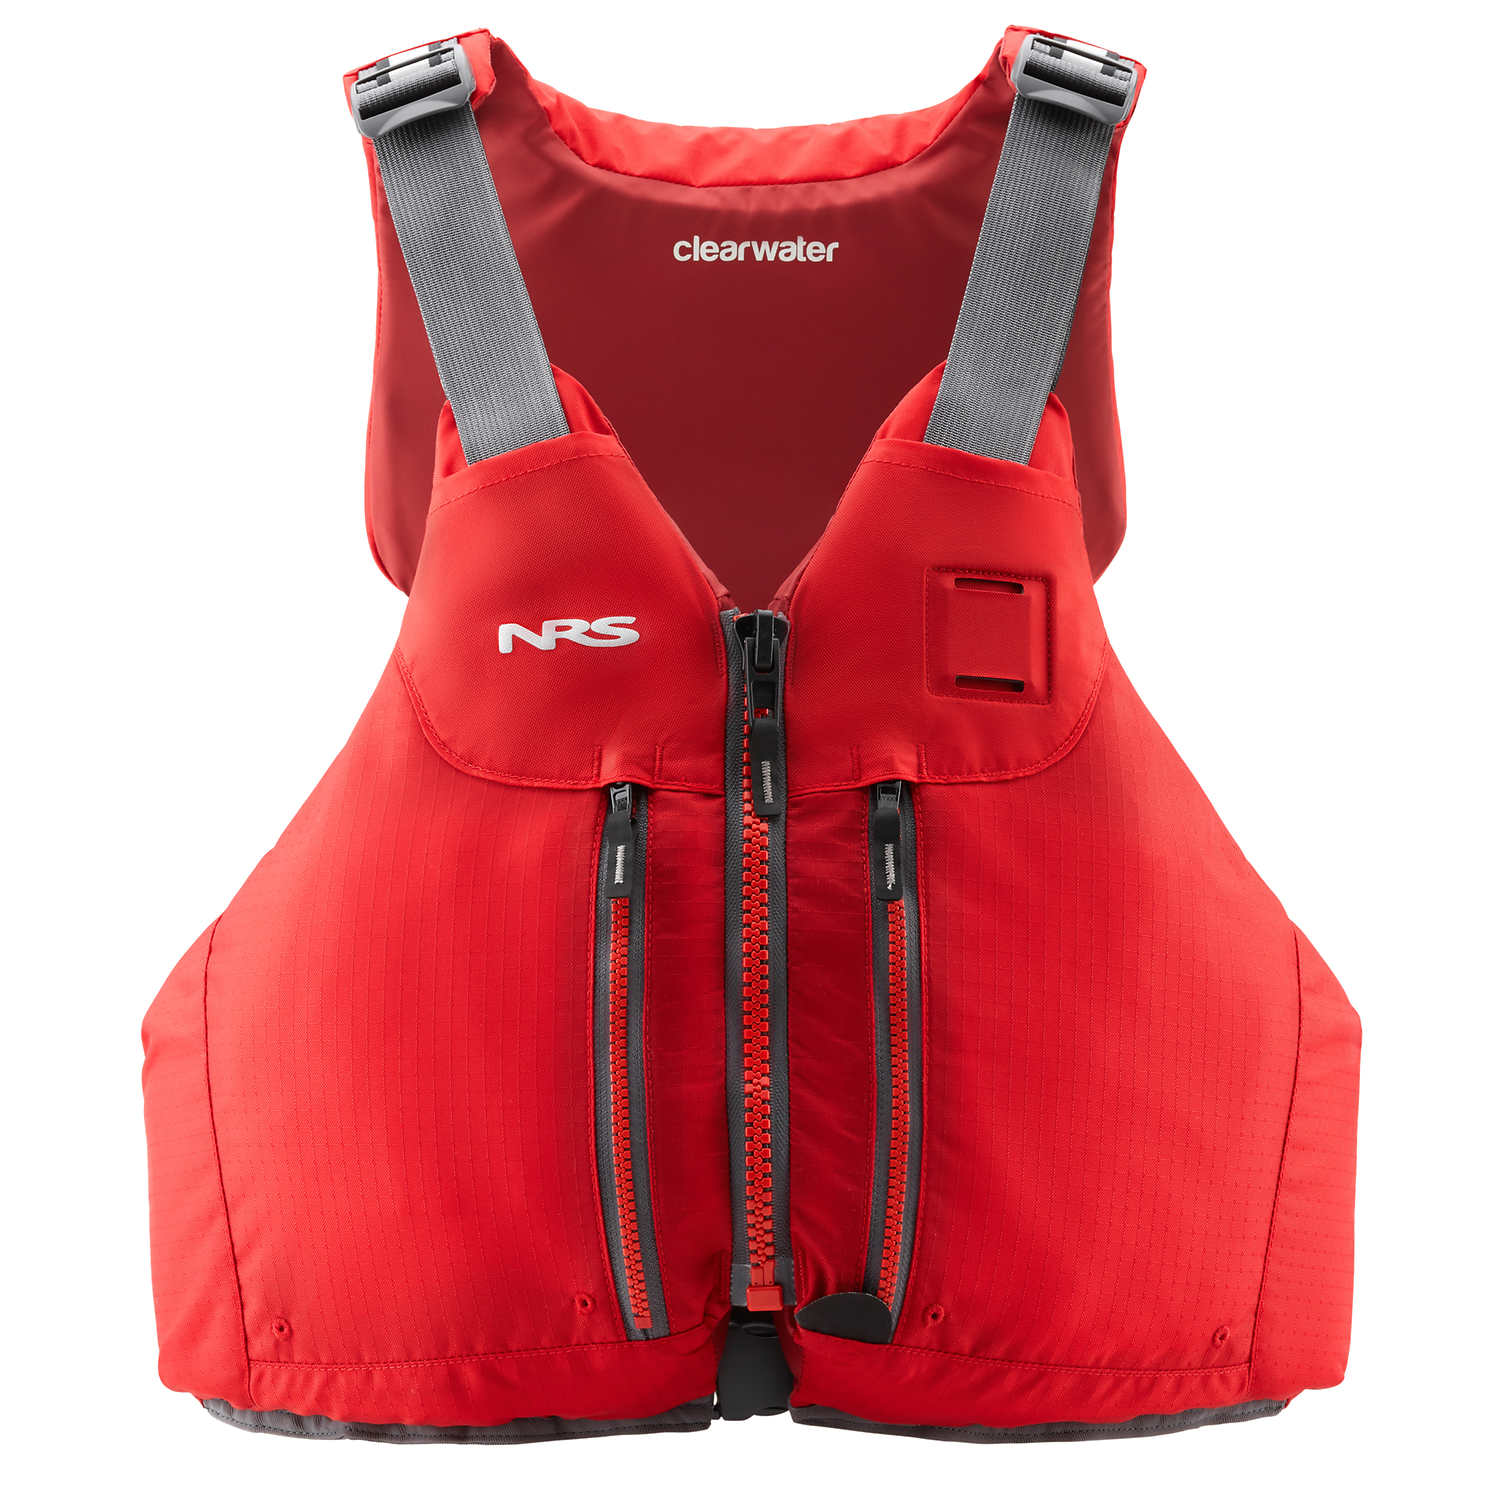 NRS Clearwater mesh back - Padlevest